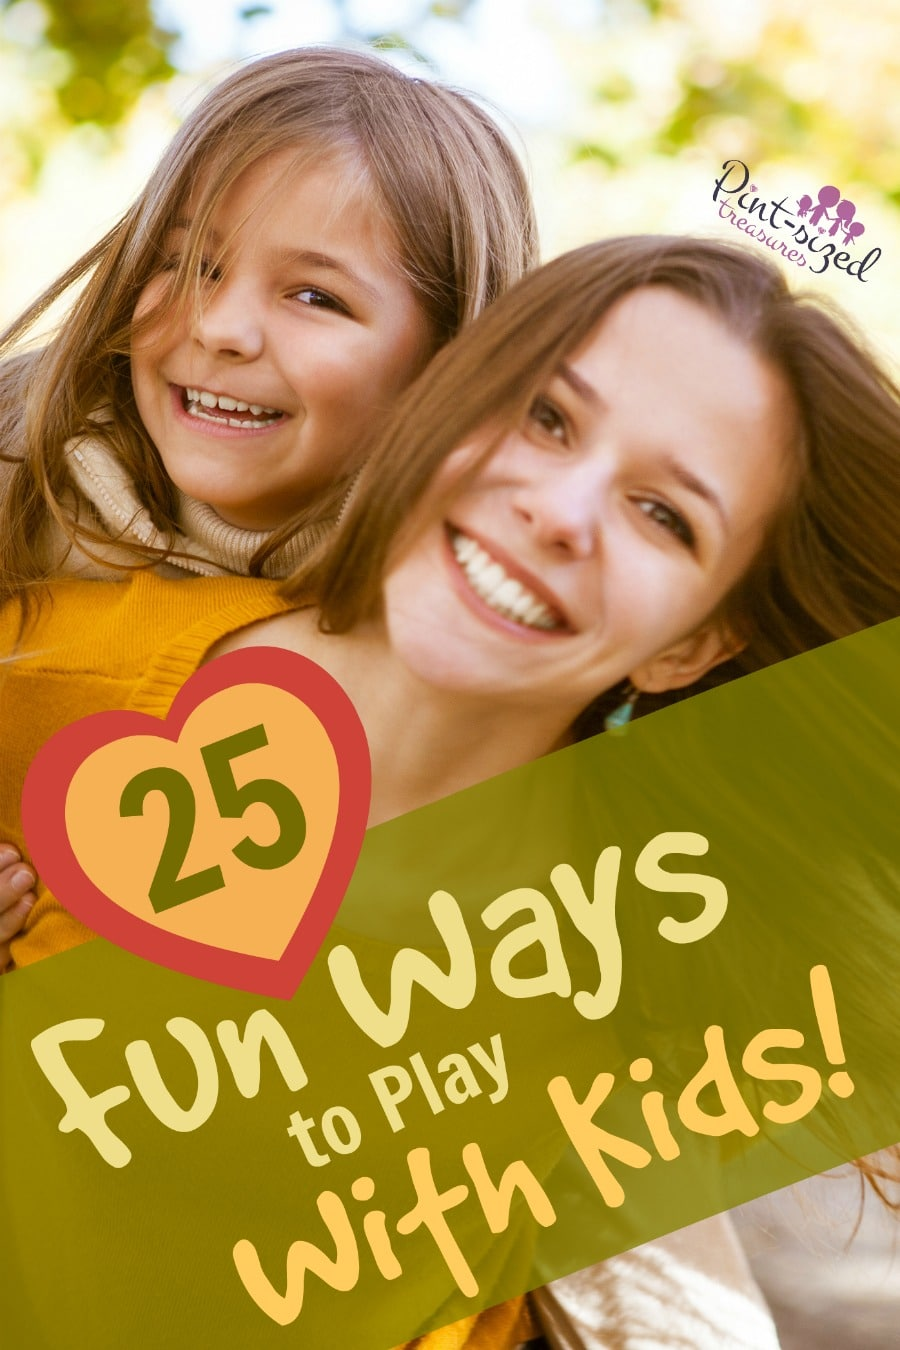 fun ways to play with kids